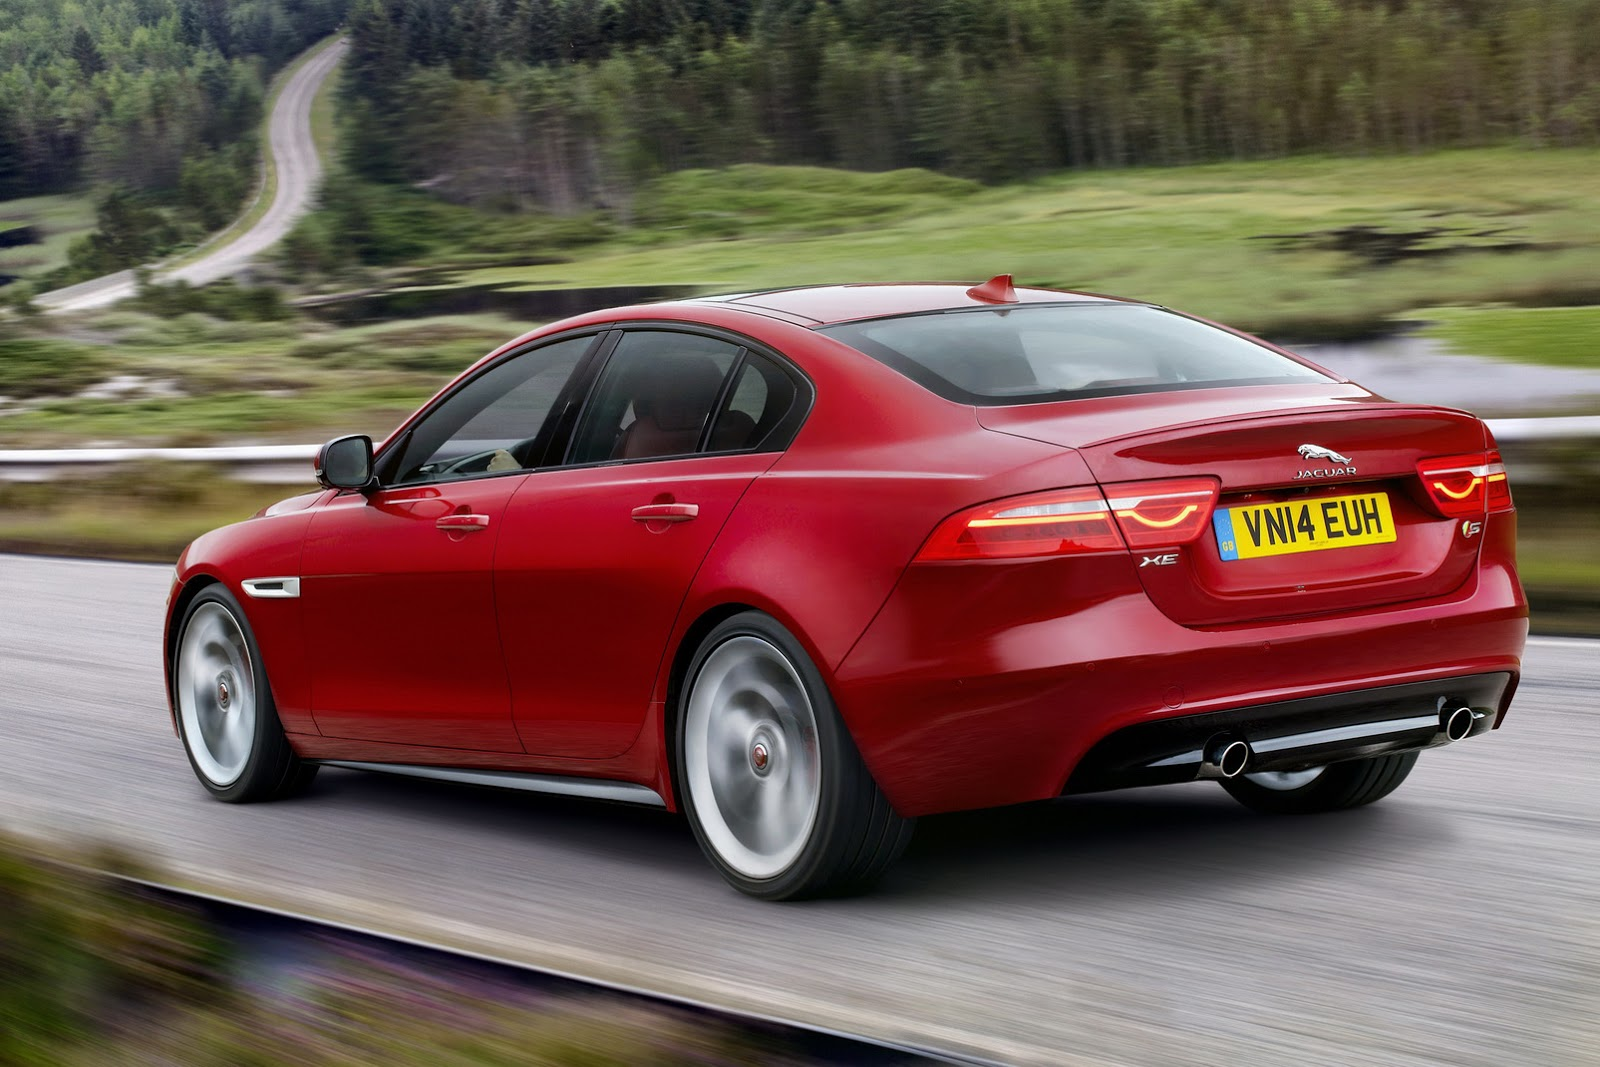 new 2016 jaguar xe officially revealed images and details motoroids. Black Bedroom Furniture Sets. Home Design Ideas